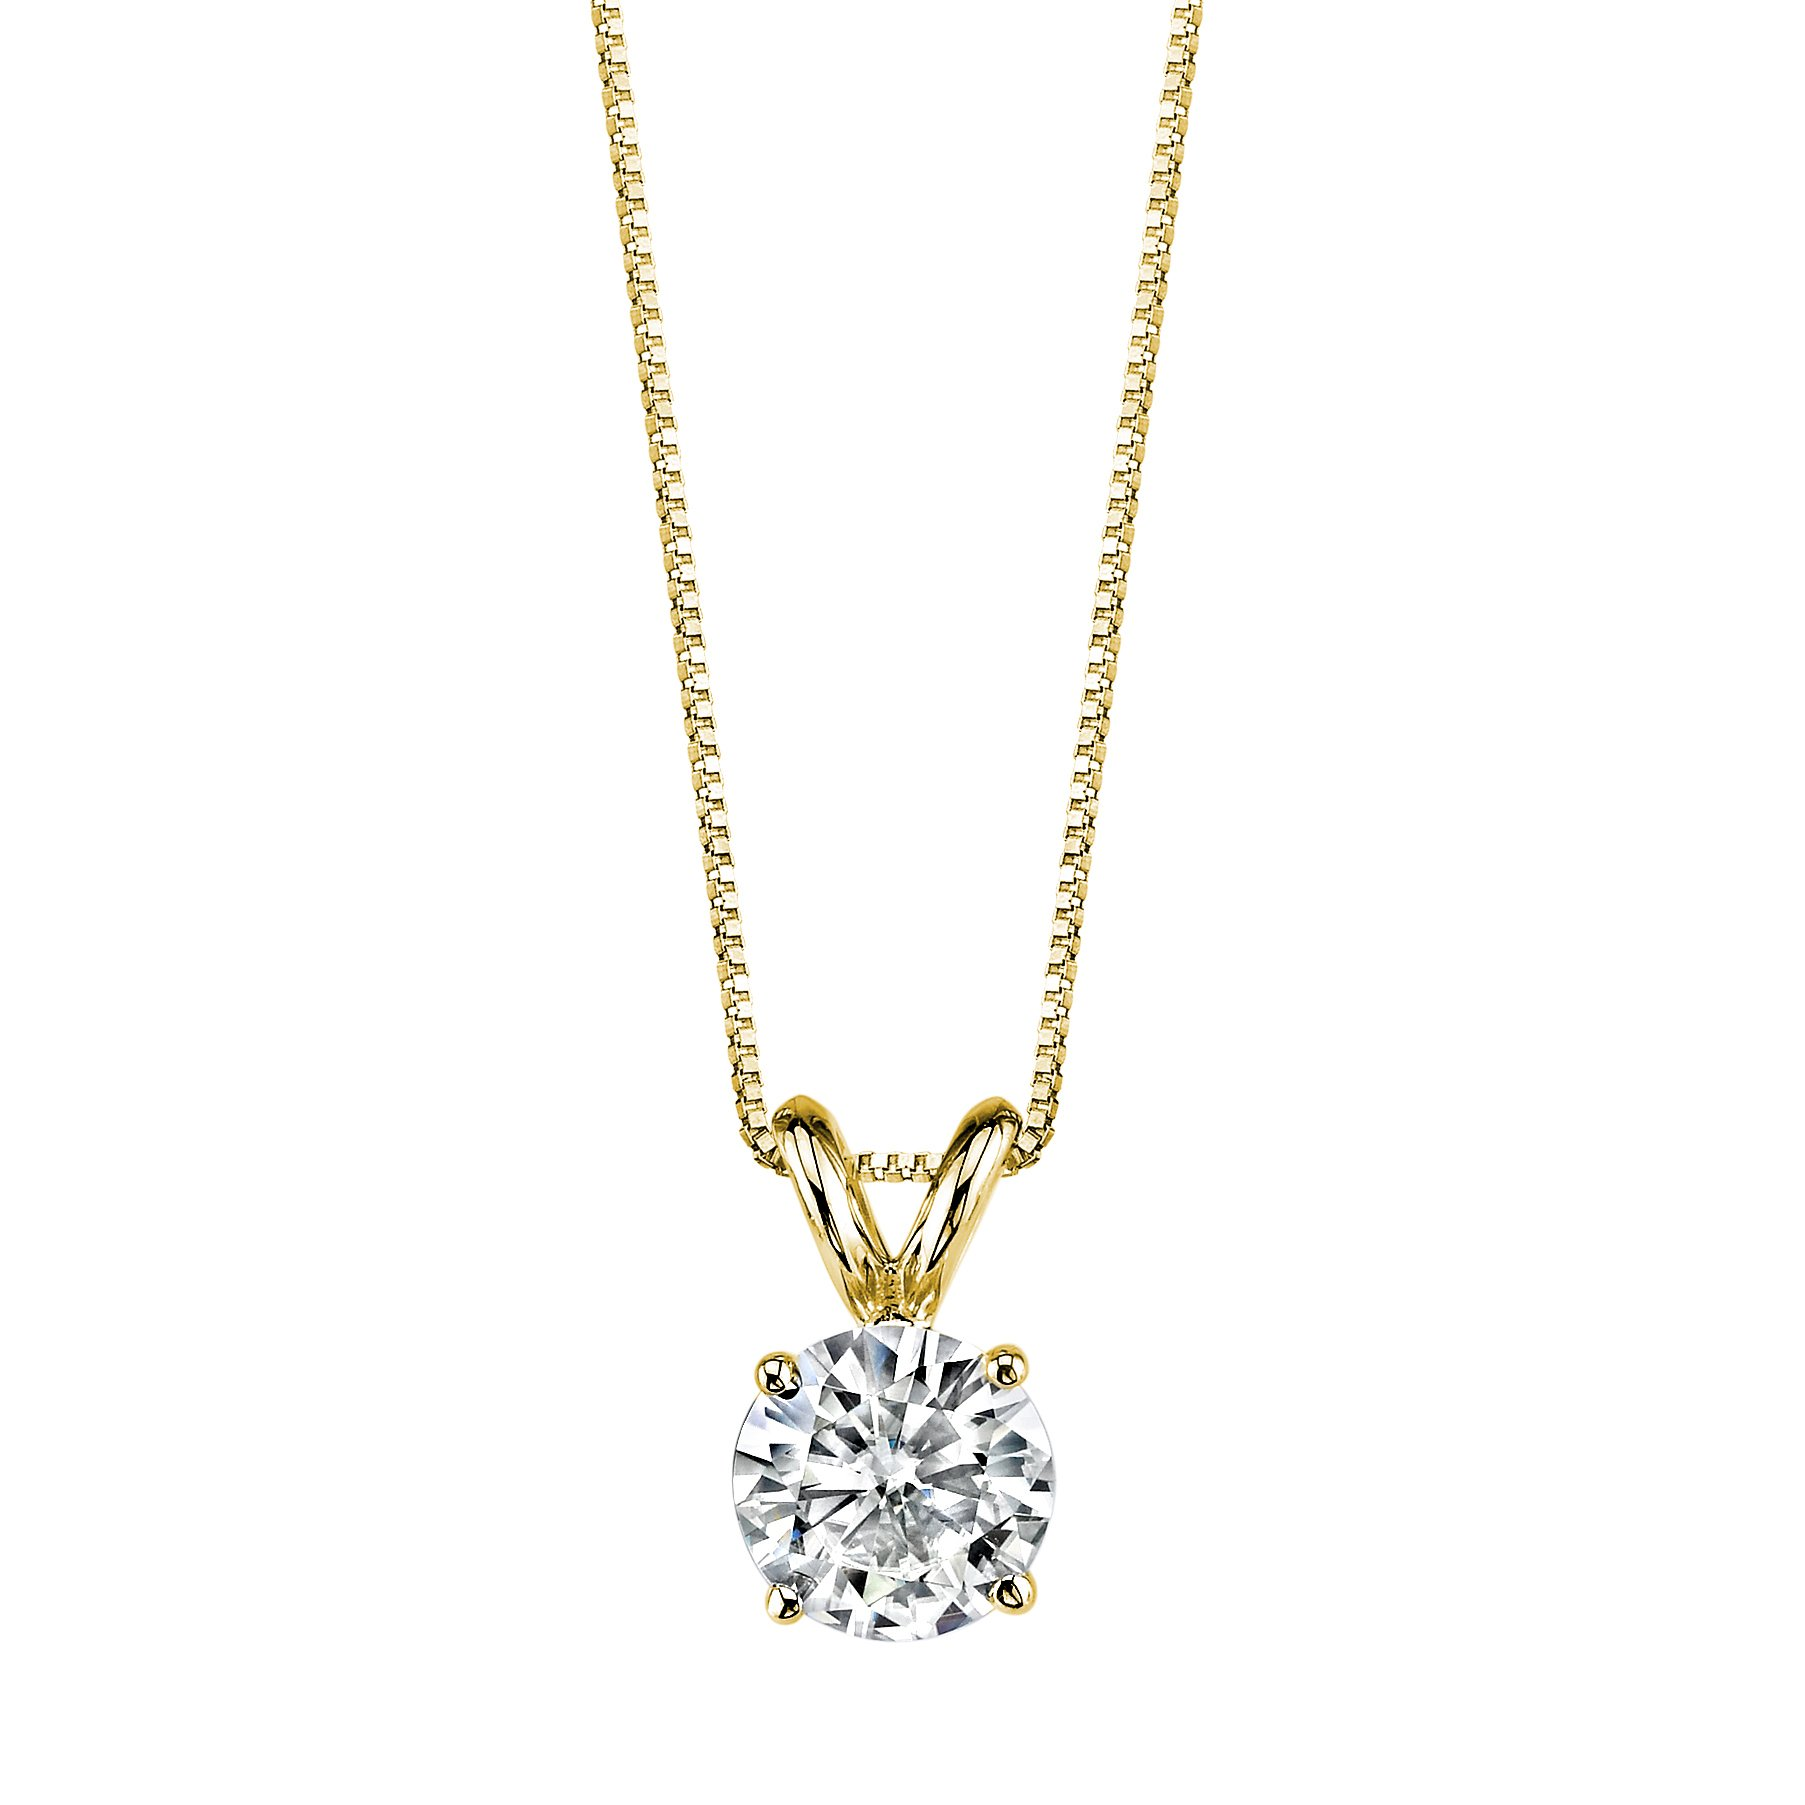 Forever One Round 6.5mm Moissanite Pendant Necklace, 1.00ct DEW (G-H-I) By Charles & Colvard